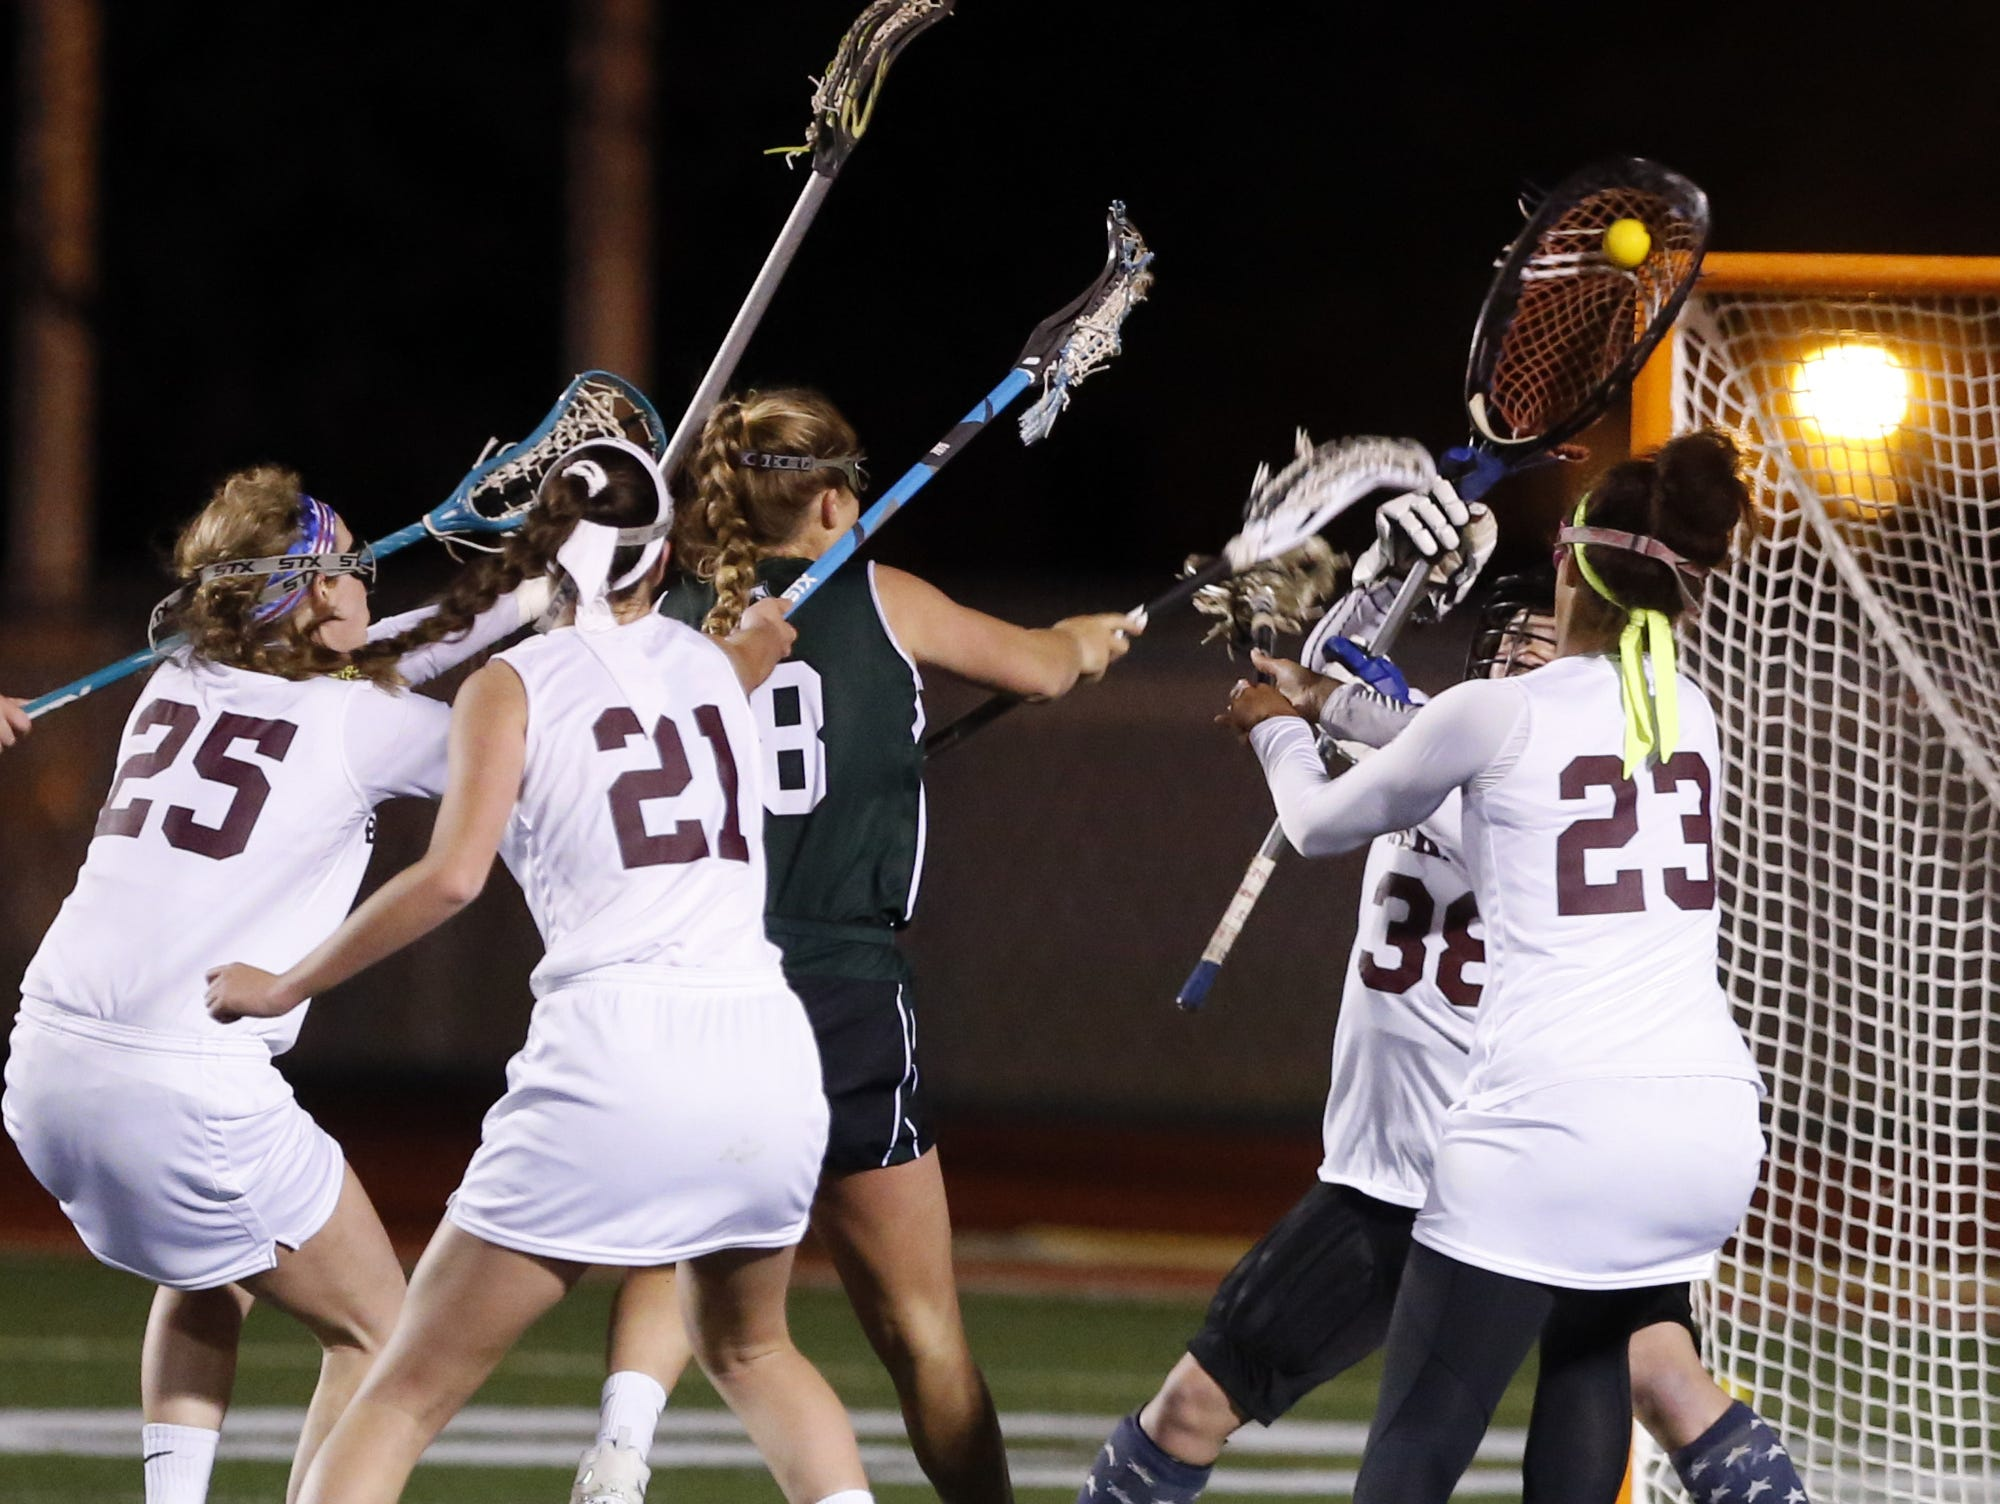 Caravel goalkeeper Hannah Seamans (38) makes a save on Archmere's Sydney Yanick's point blank shot in the final minutes Caravel's home win, 11-9.